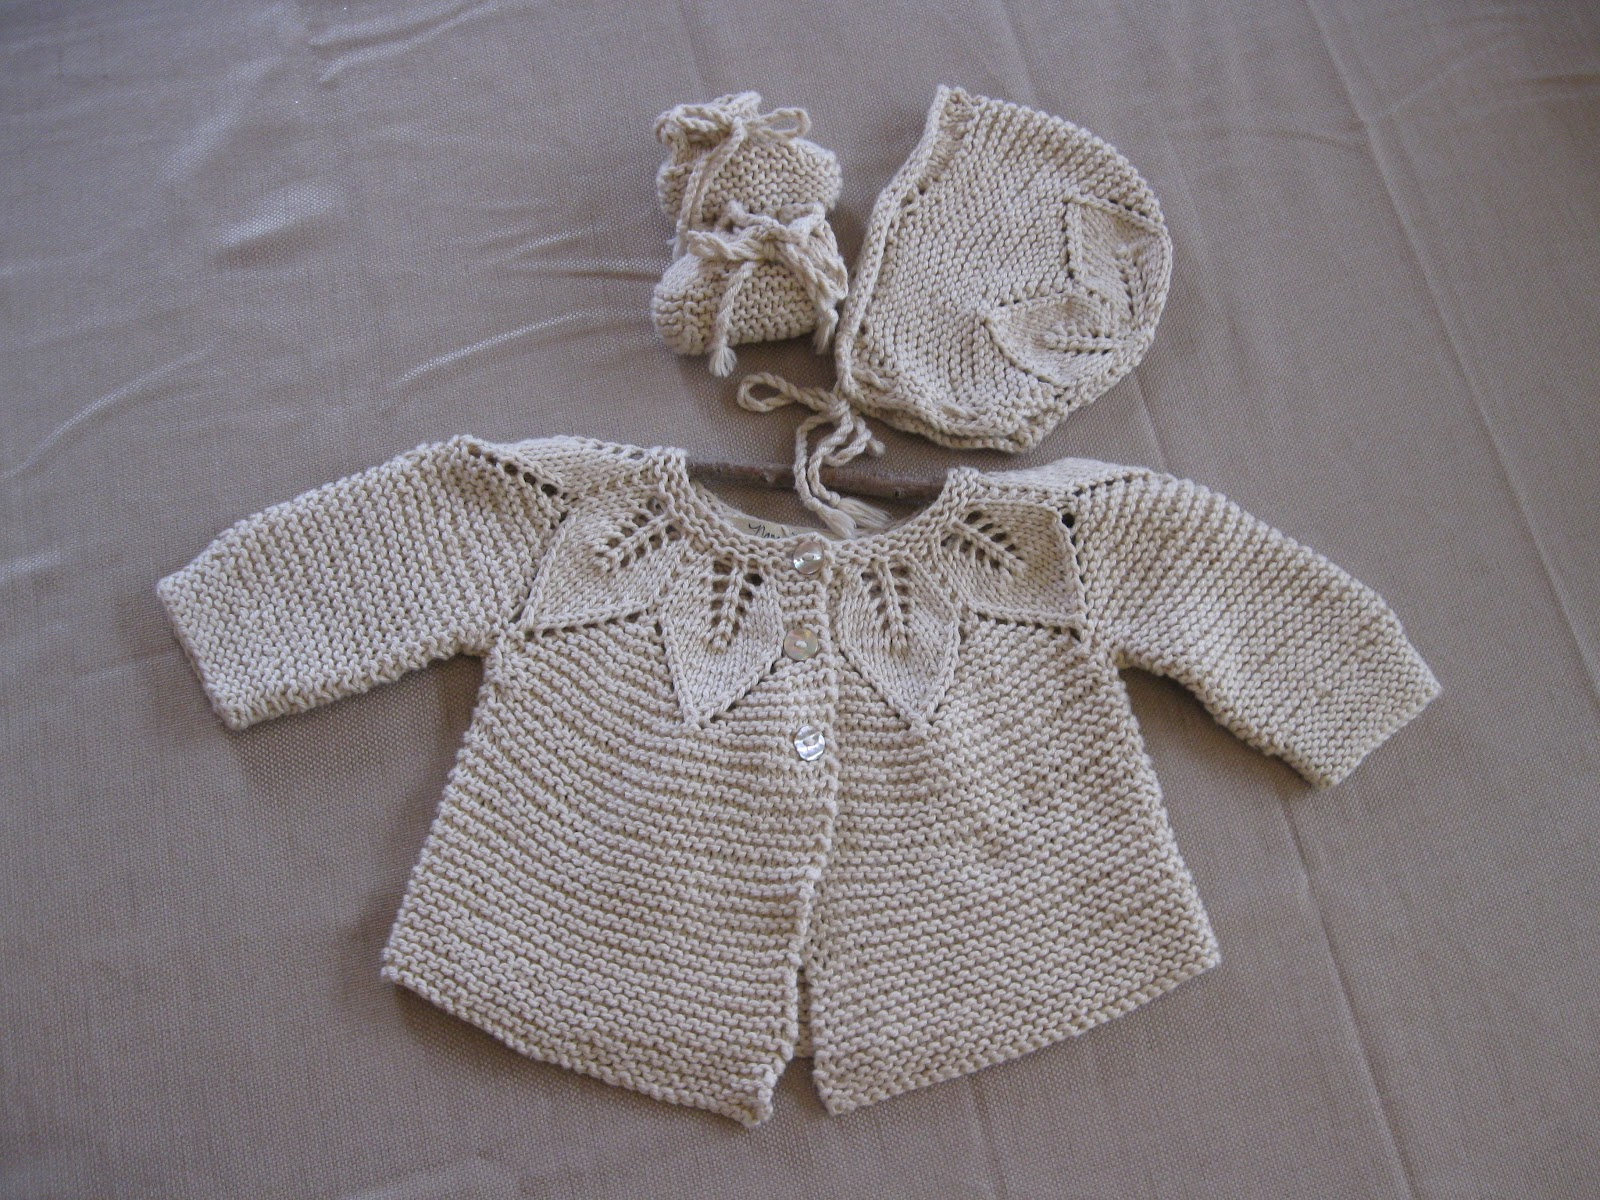 Knit Leaf Pattern Baby Sweater : Of Wool and Loveliness: DIY Crystal Chandelier and a Lacy ...